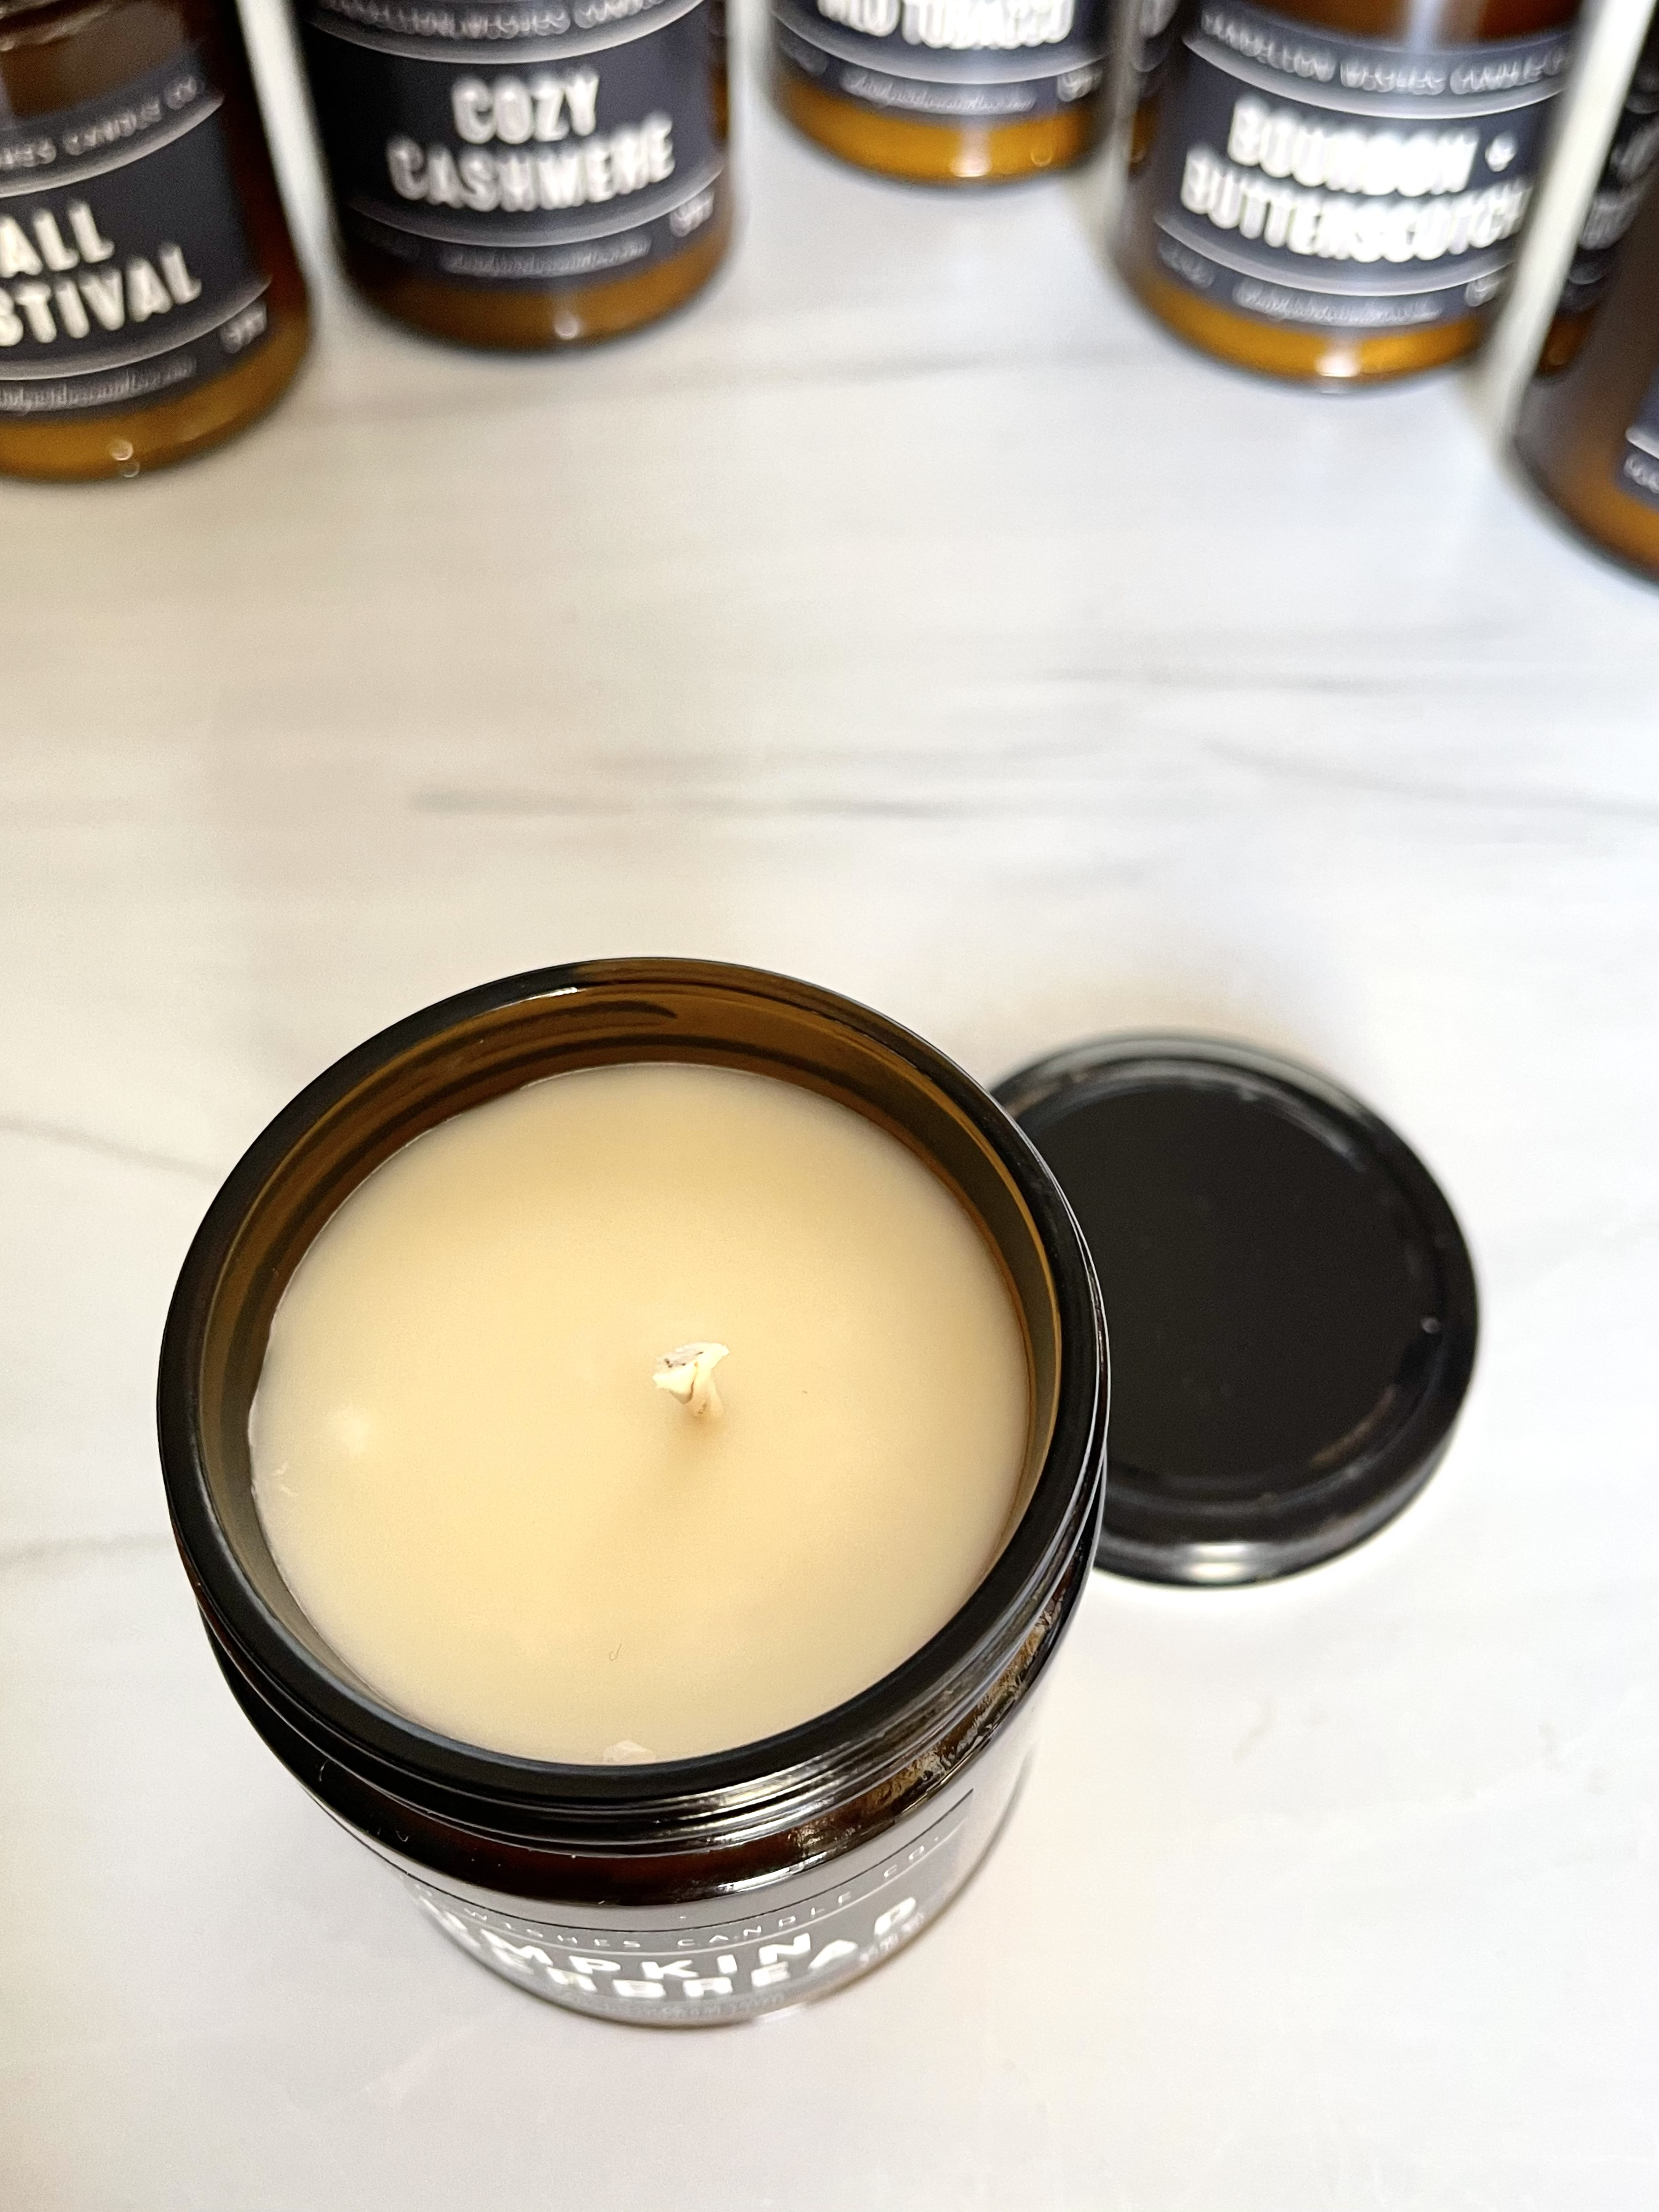 Sunset in Napa, Amber Jar Candle with Lid, 9oz